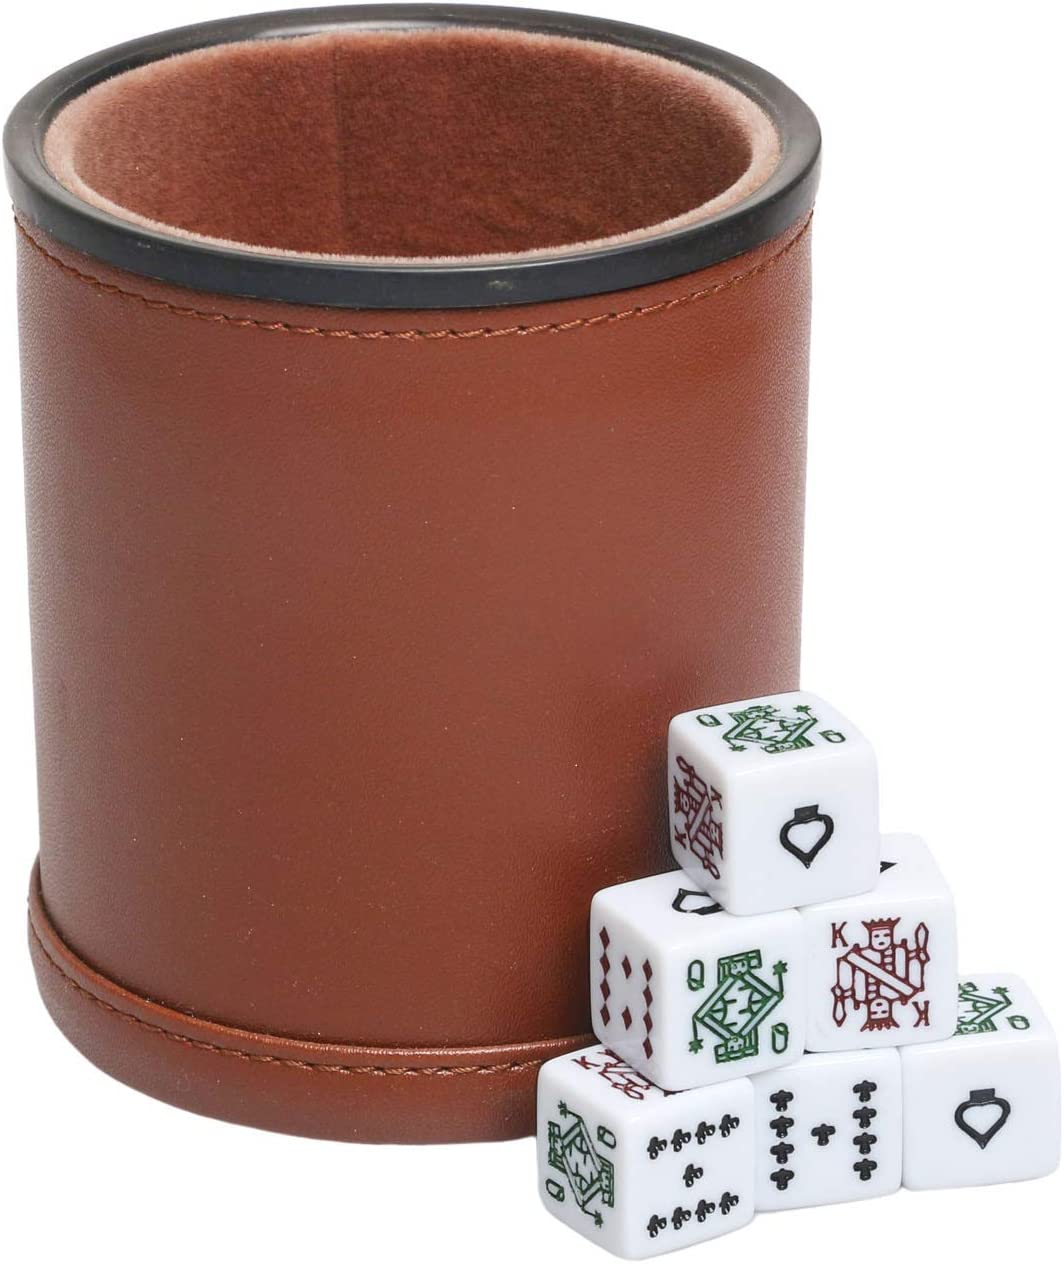 Leatherette Dice Cup with Poker Dice, Felt Lining Quiet Shaker for Playing Yahtzee/ Farkle/ Liars Dice,